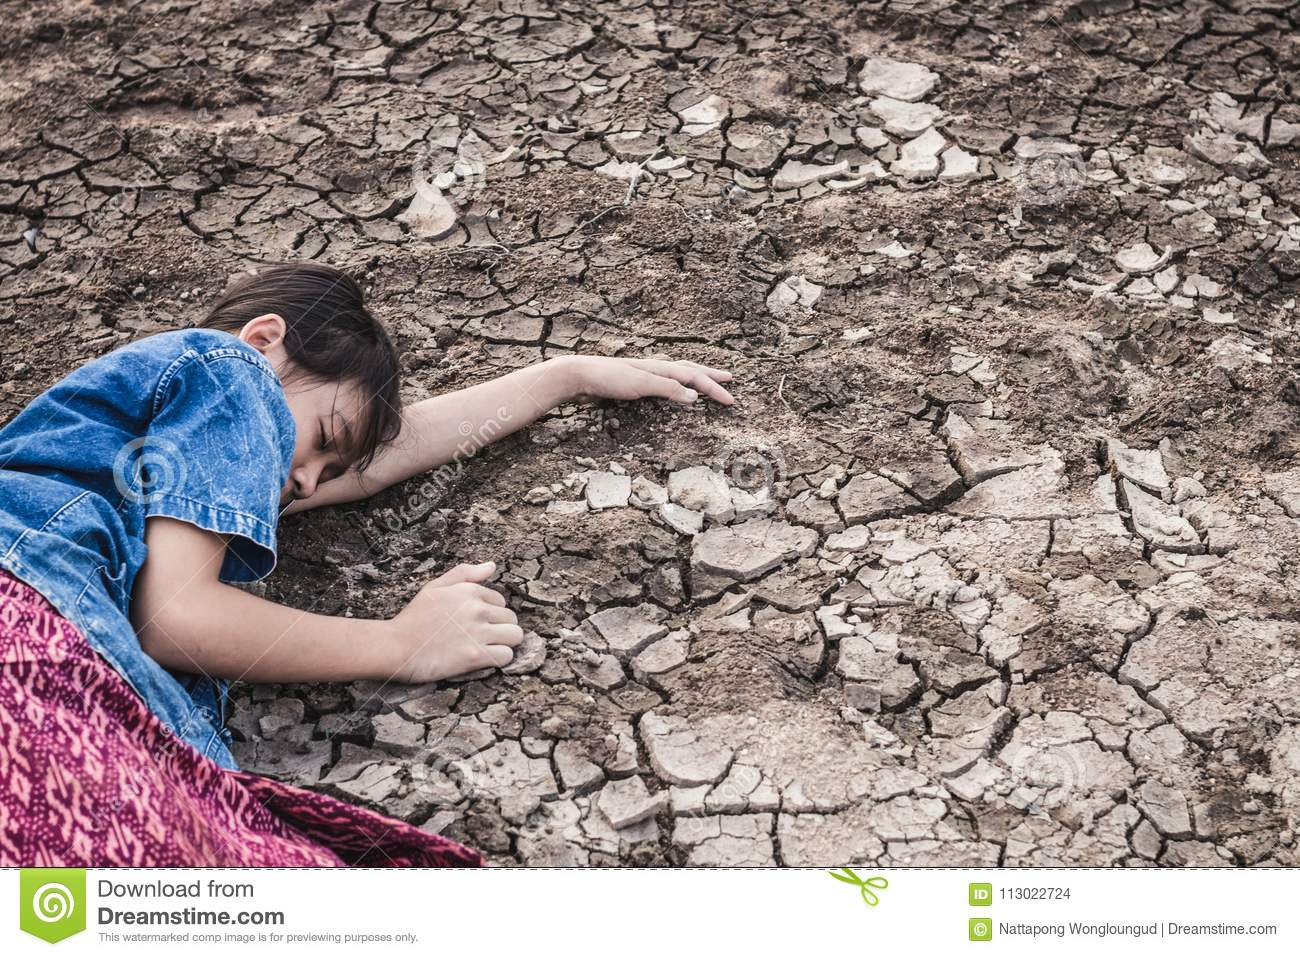 The Women On The Arid Soil In Hot Weather Lacked Drinking  Stock